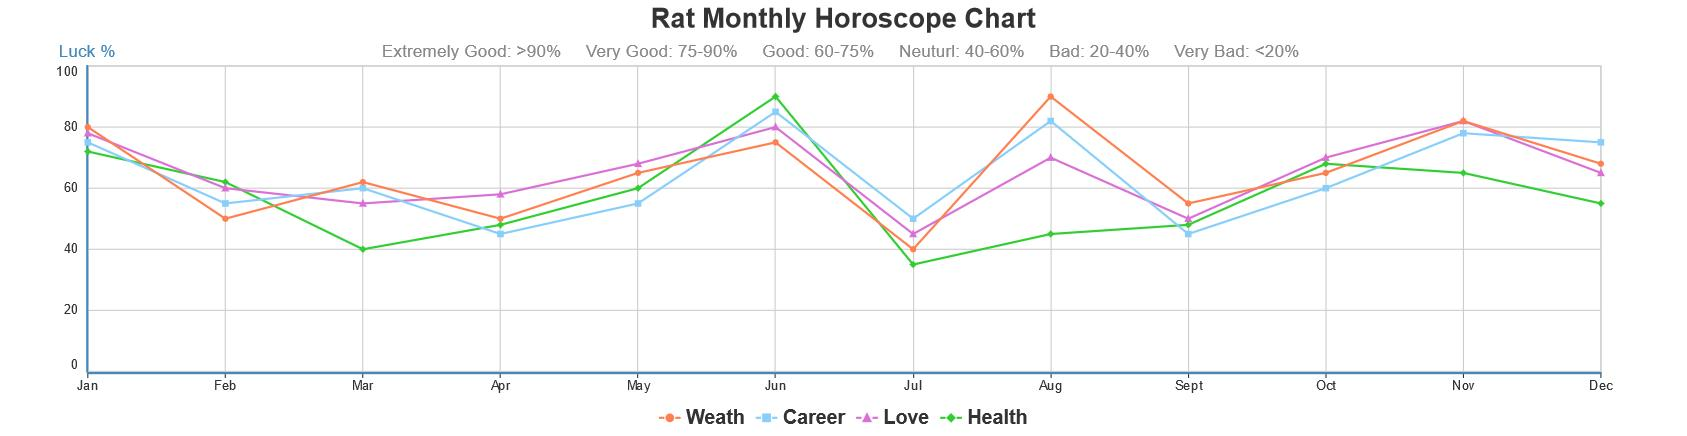 Chinese Horoscope for Rat/Mouse, 2019/2020 Weekly, Yearly